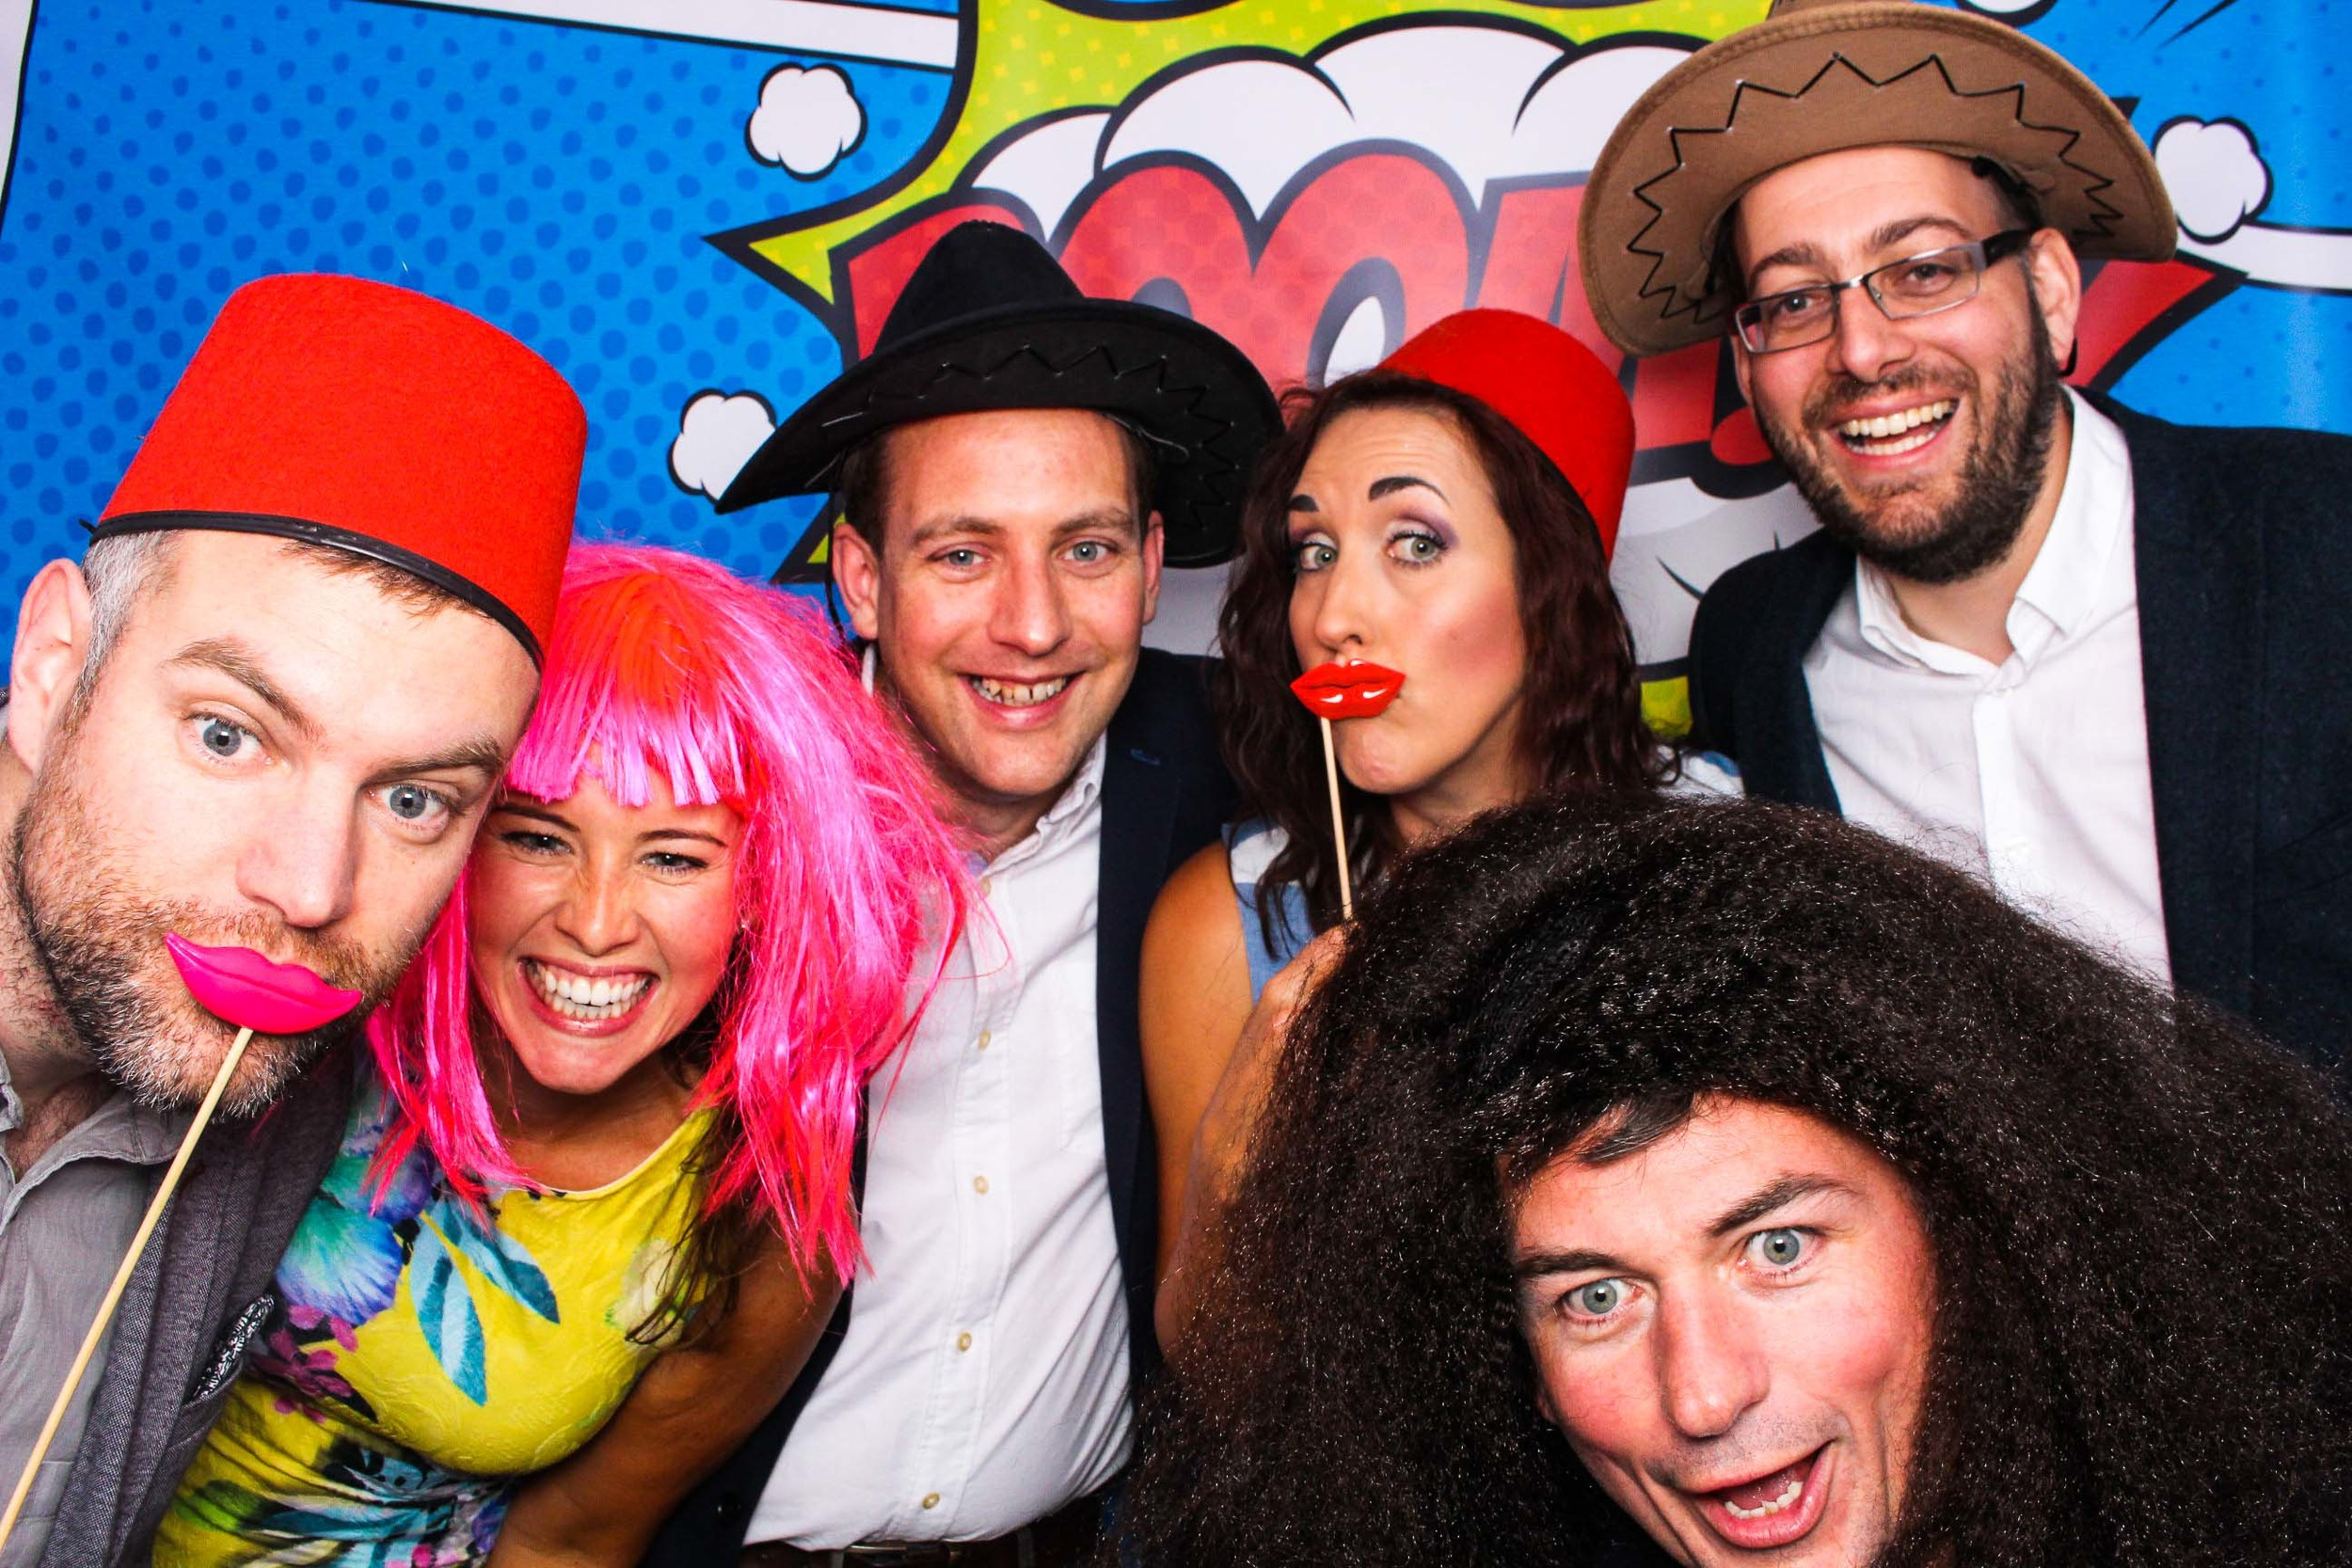 Fotoauto Photo Booth Hire - Shop Direct-255.jpg